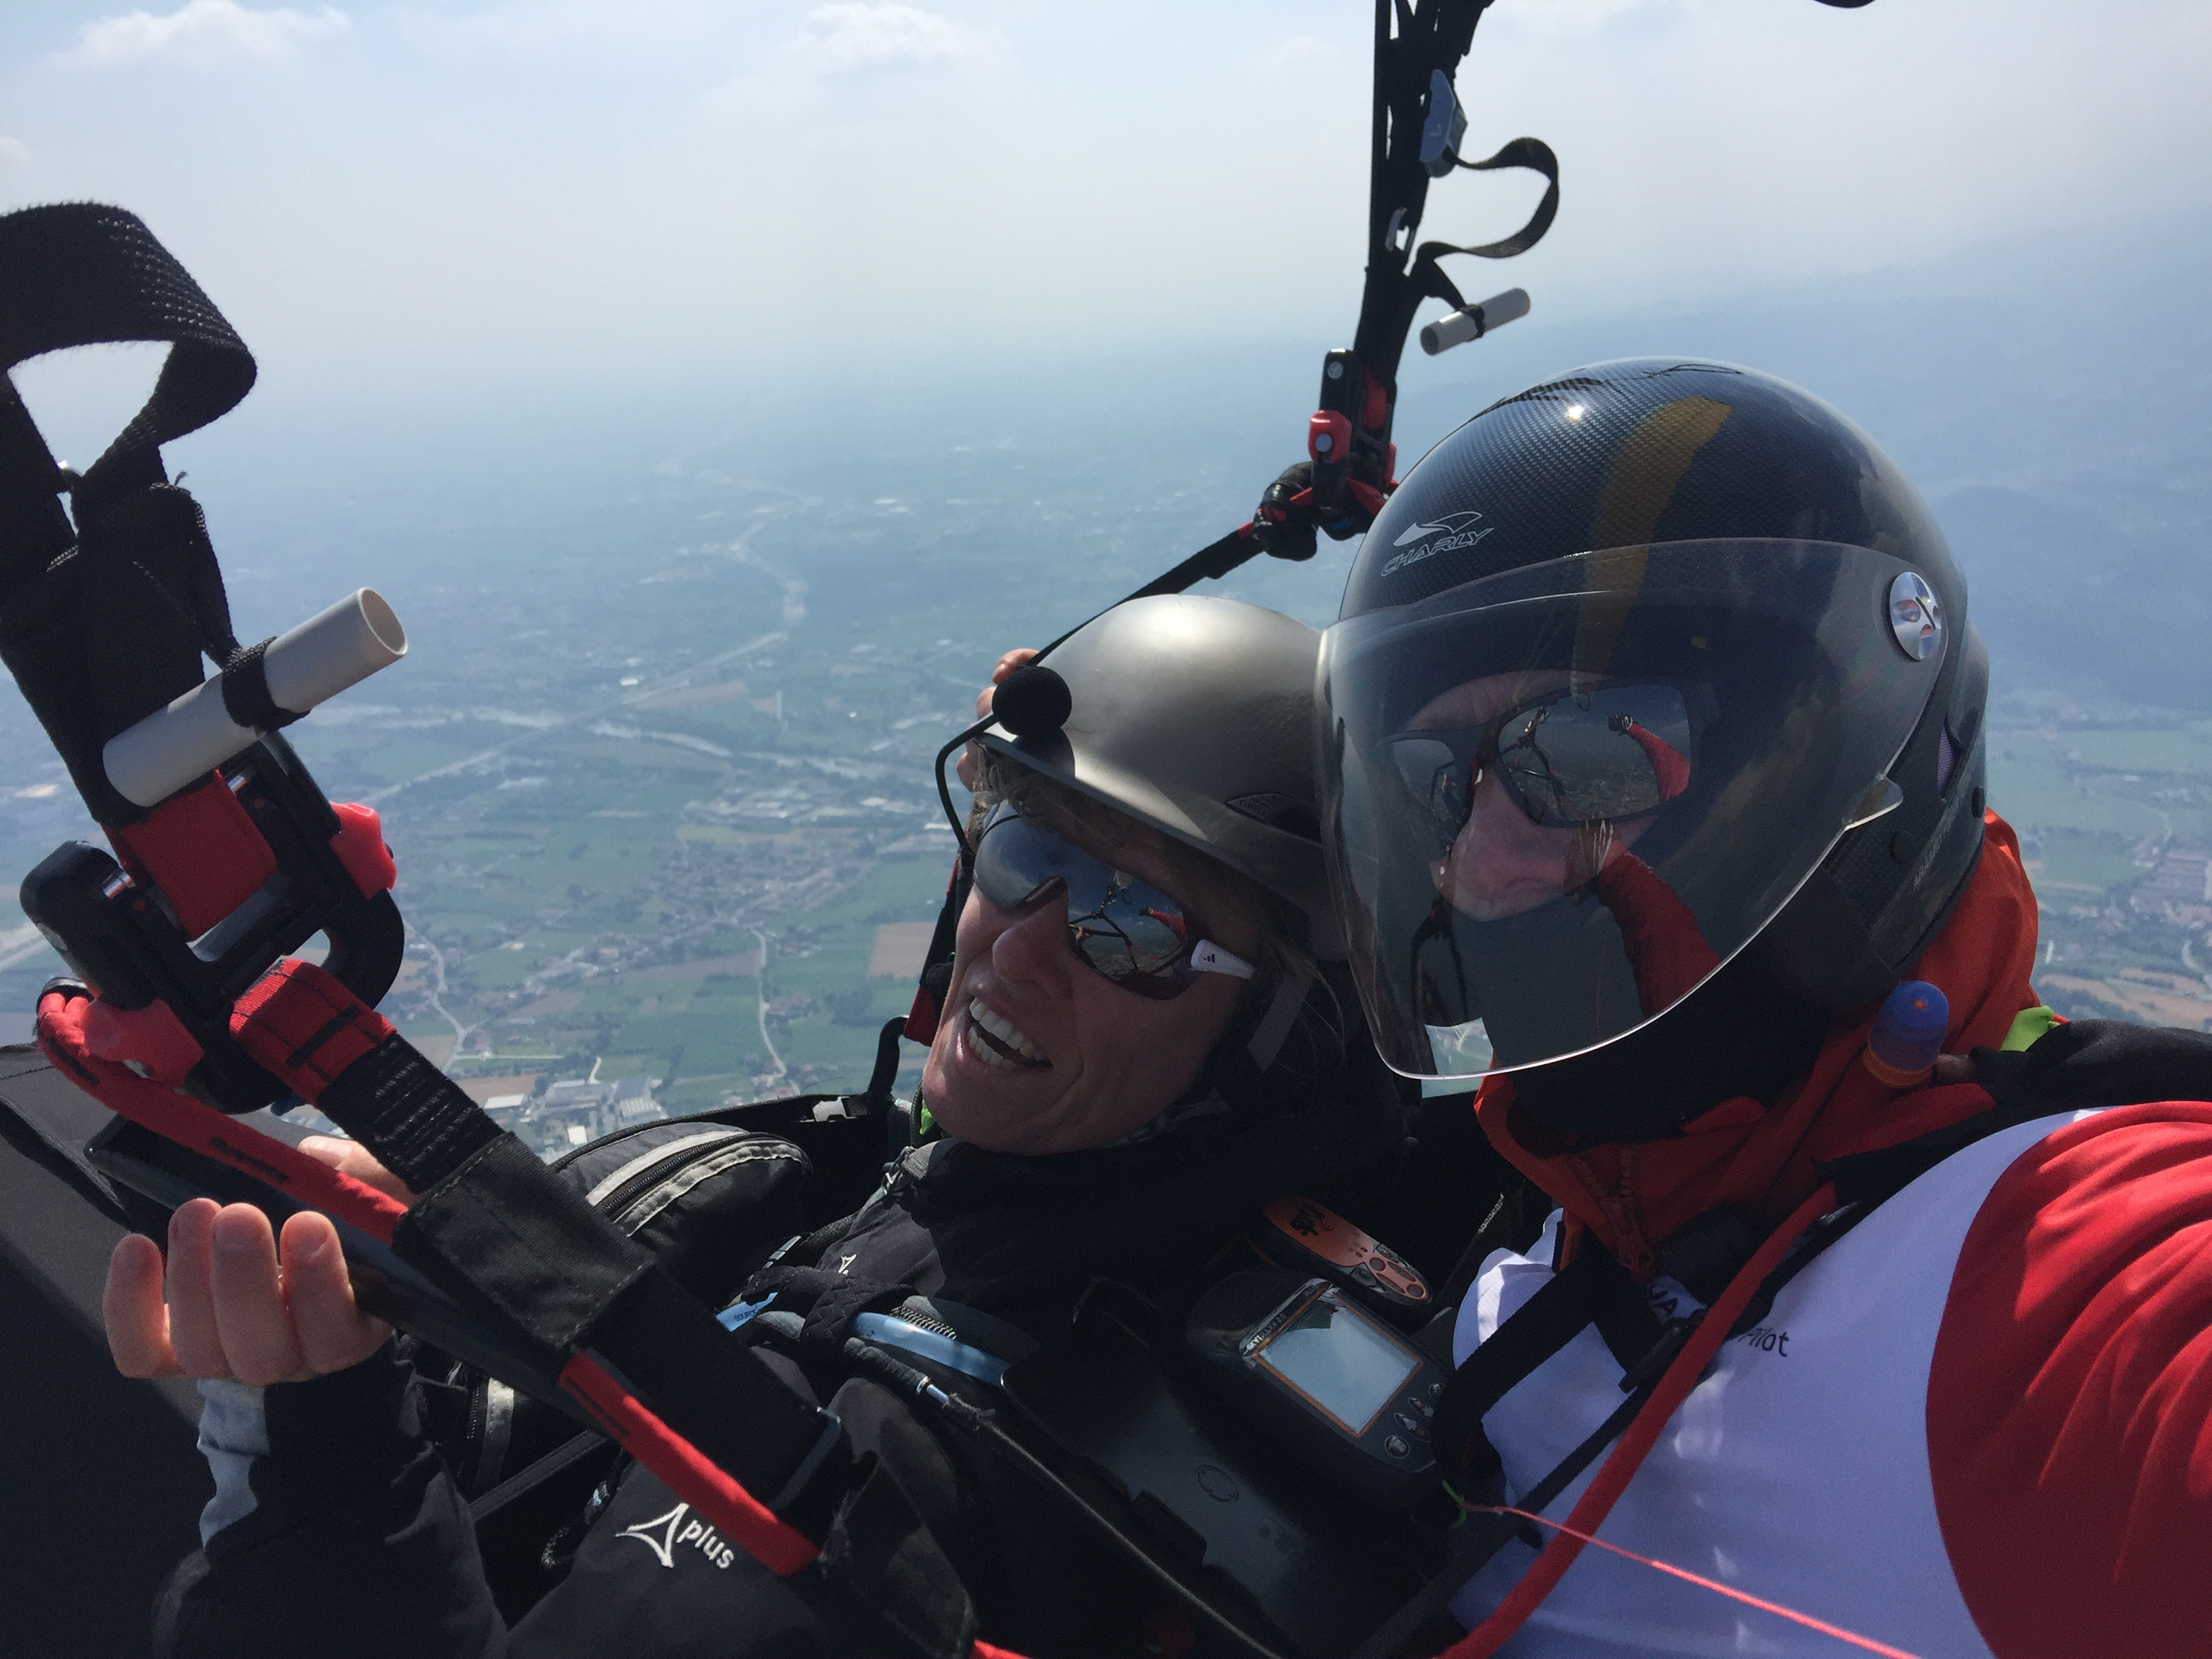 Tandem XC-flying – setting a record without knowing – having a co-pilot, not a passenger